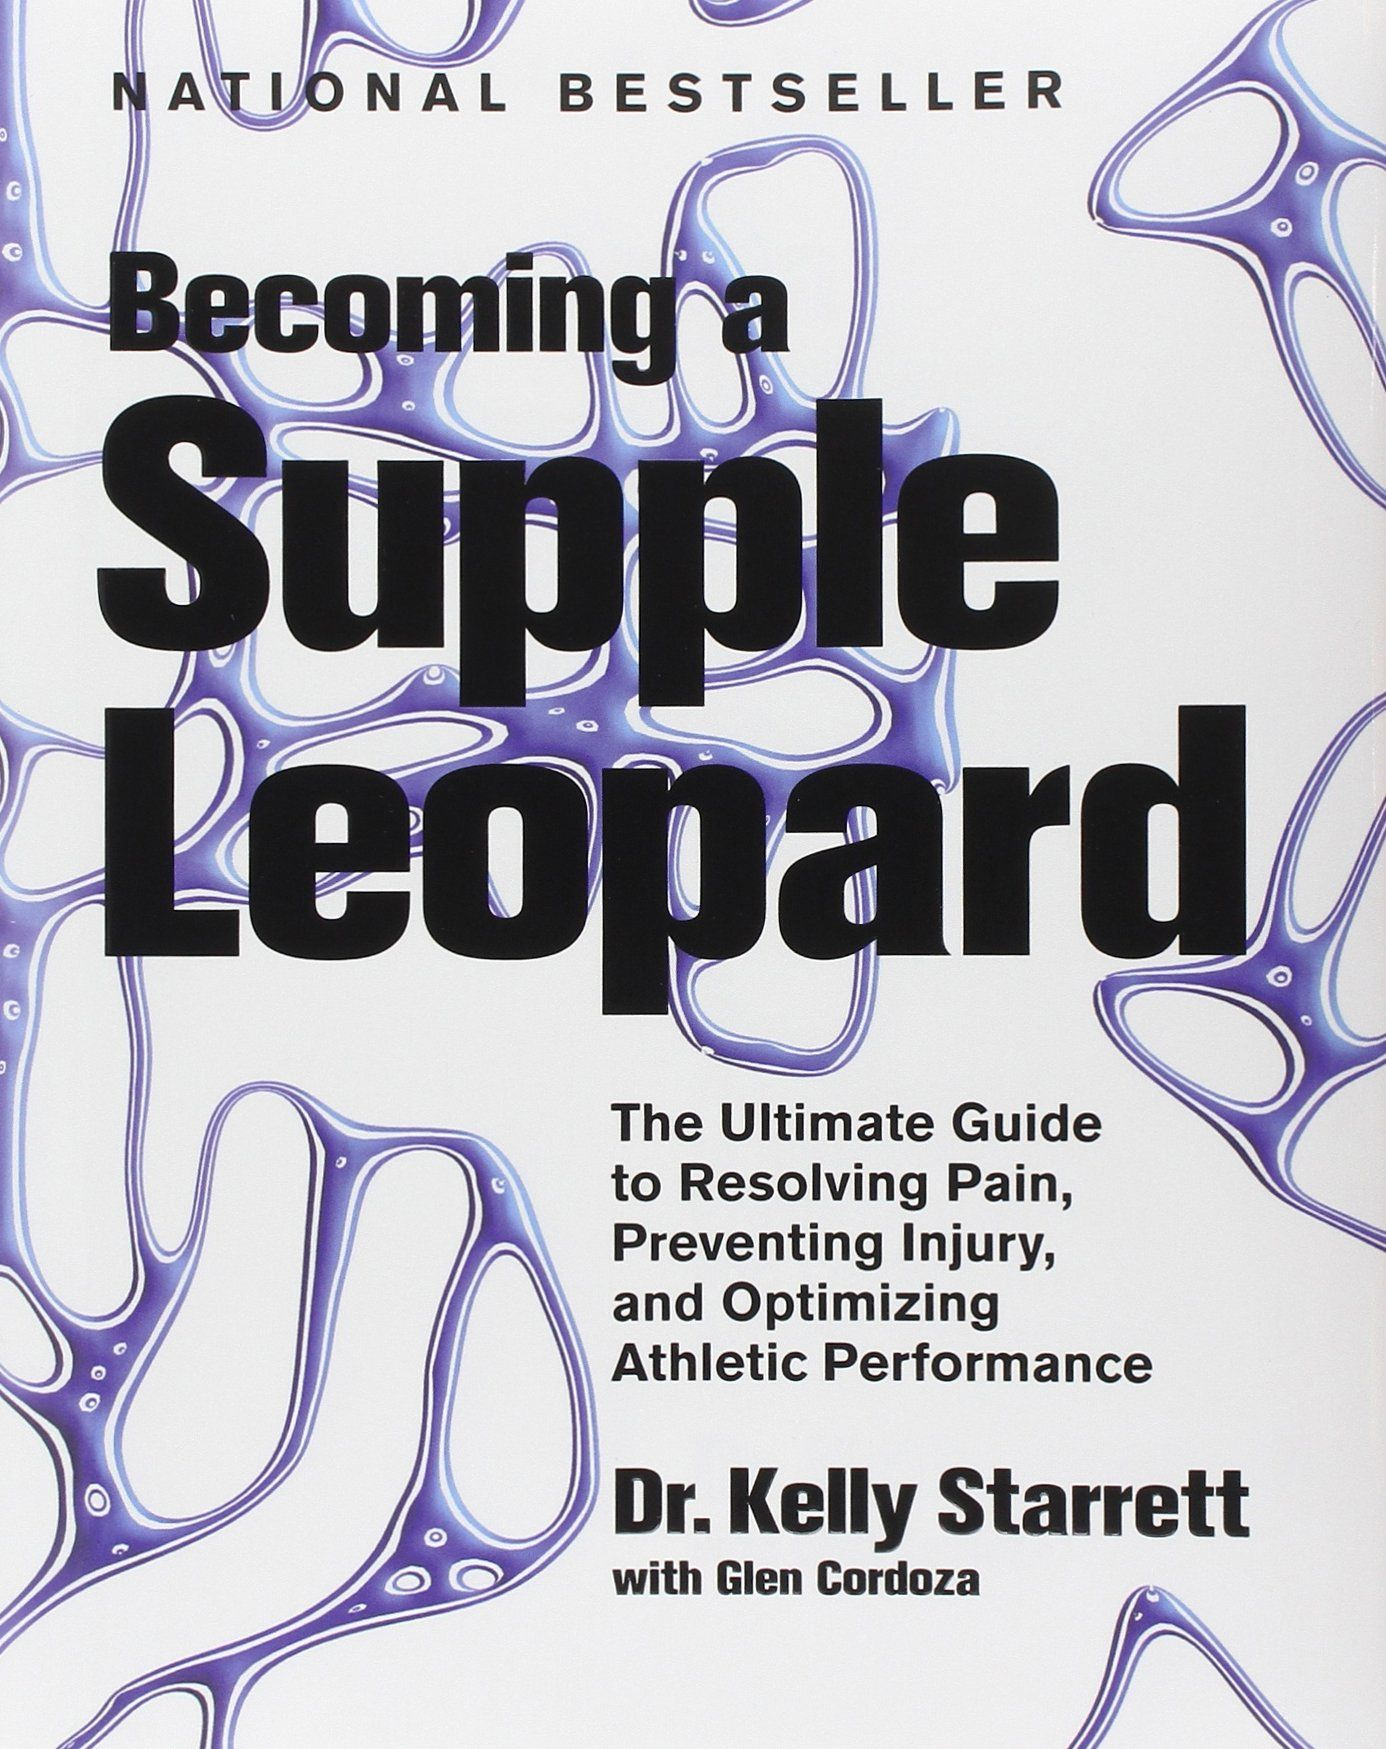 I swear every strength coach has this book now.... mostly